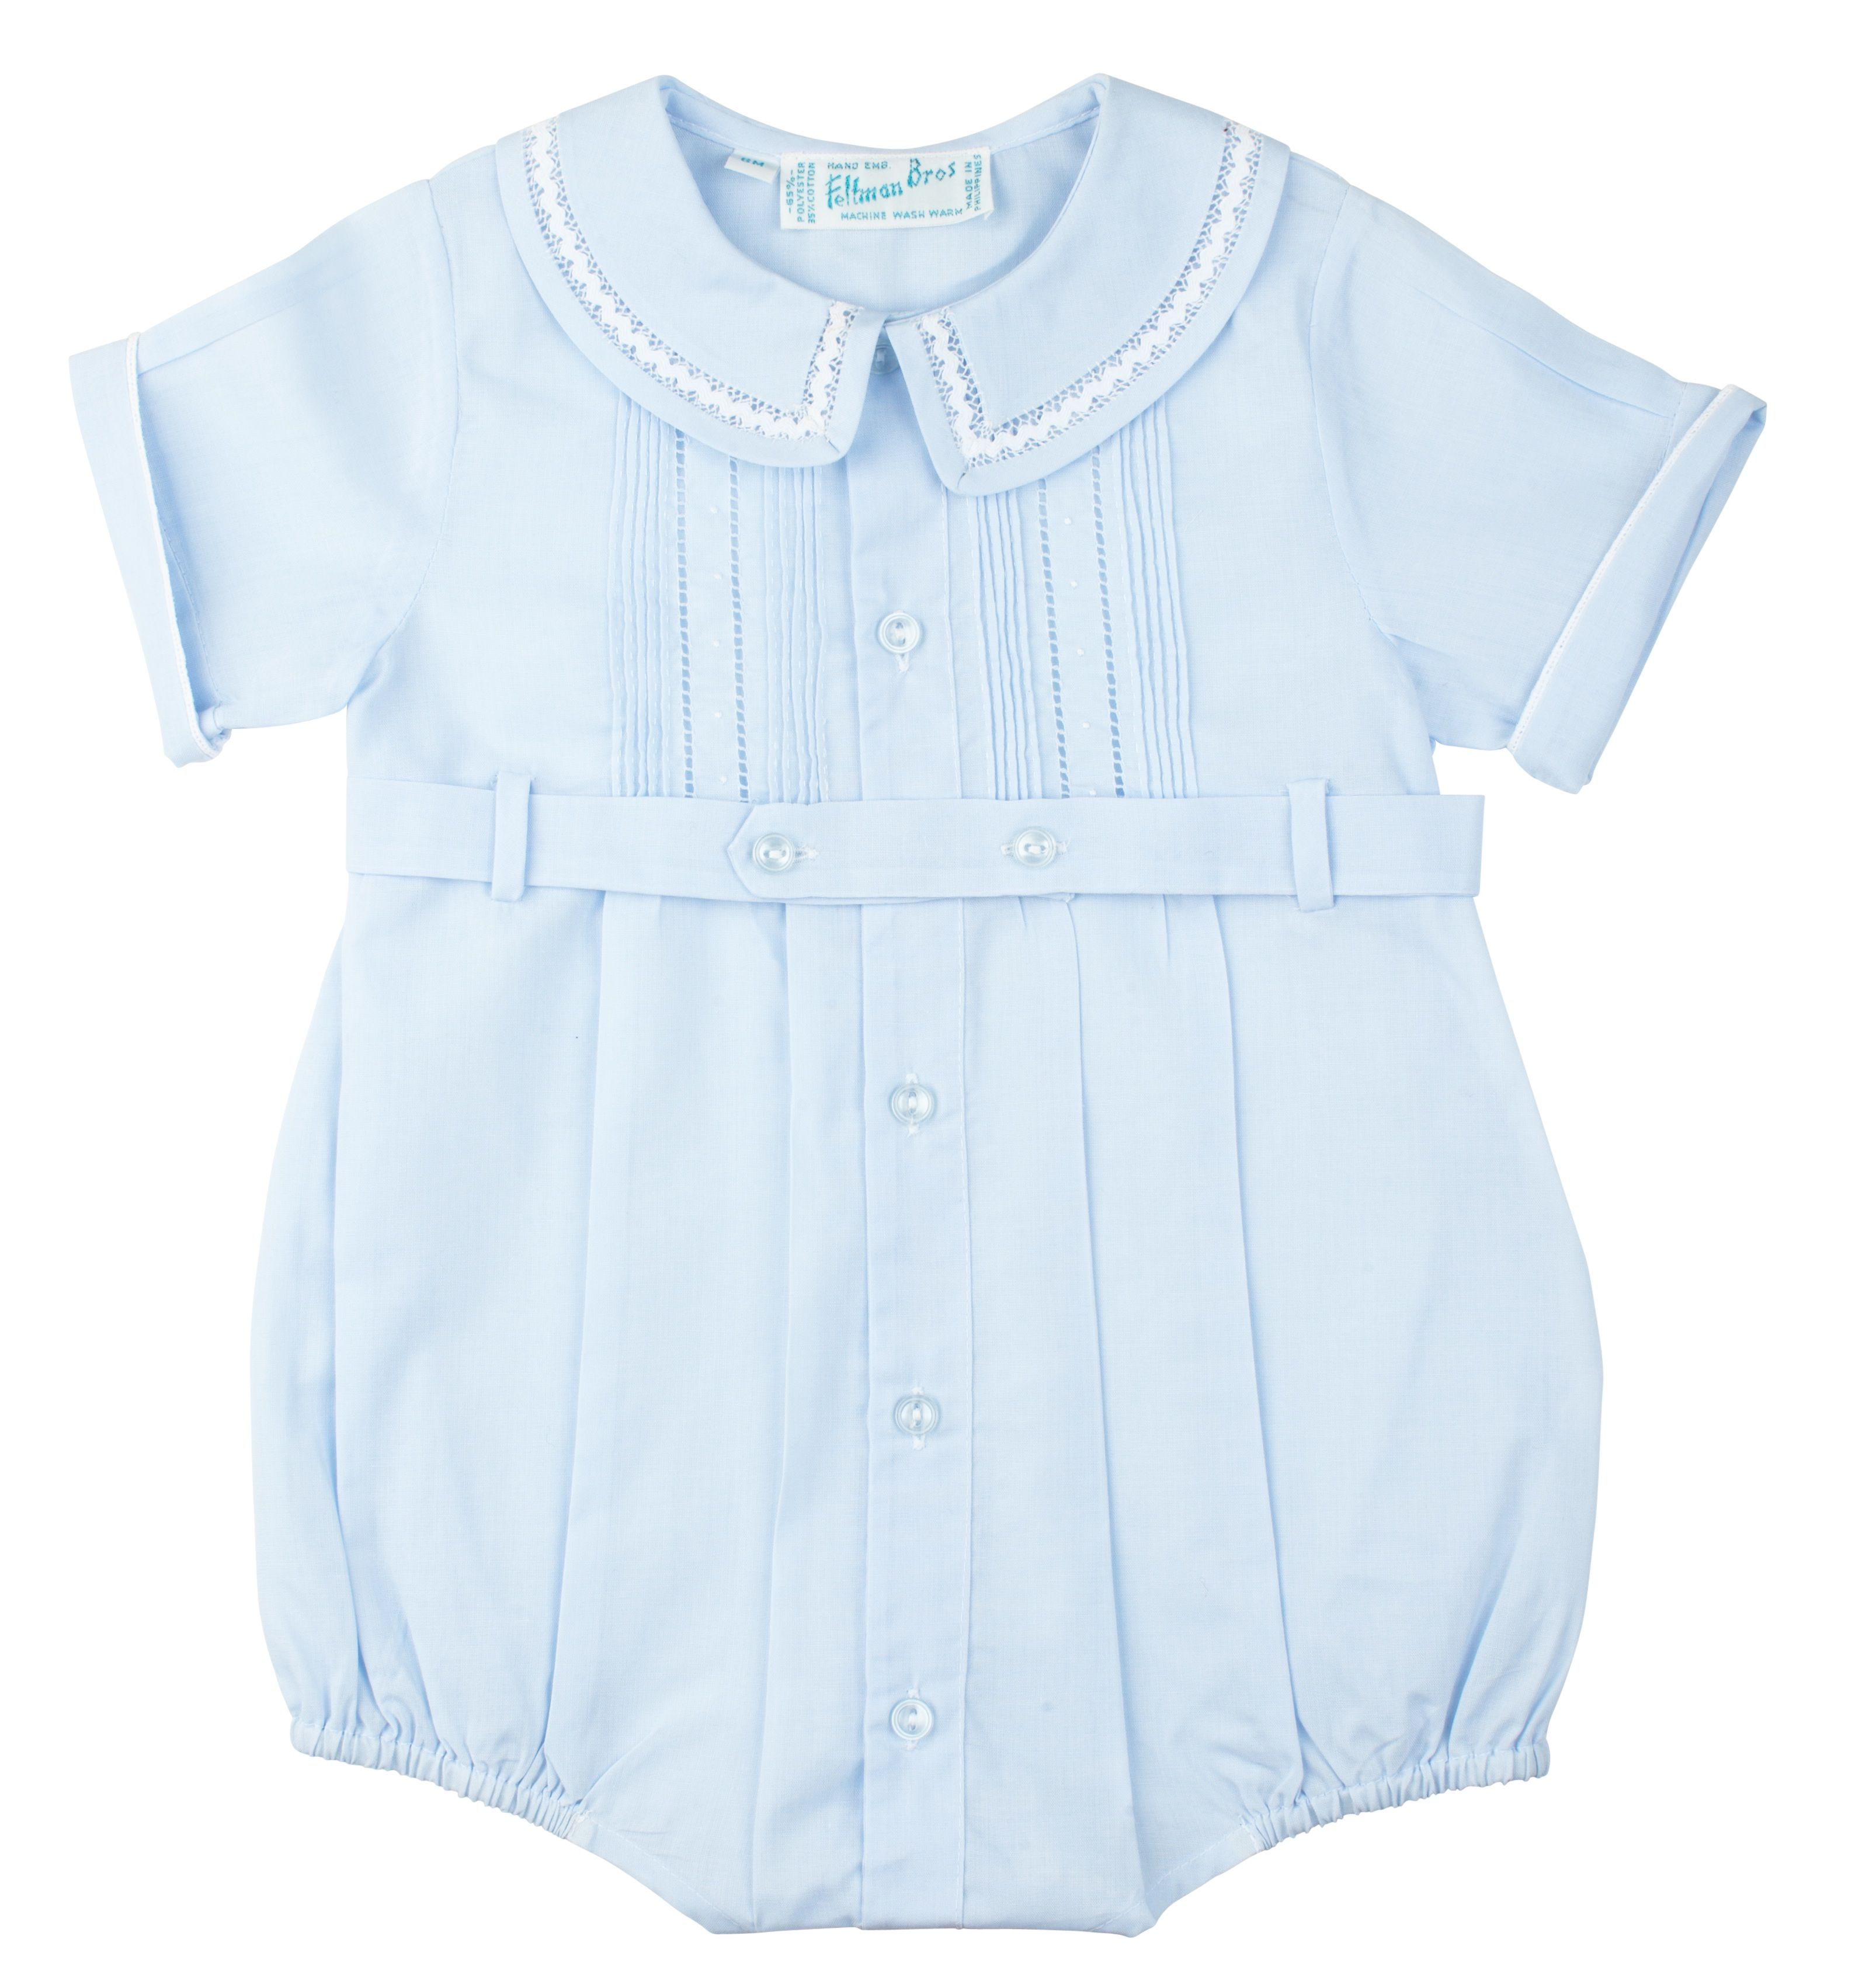 a2cd2aa807 Pin by Feltman Brothers on Boys One Piece   Baby boy fashion, Baby ...